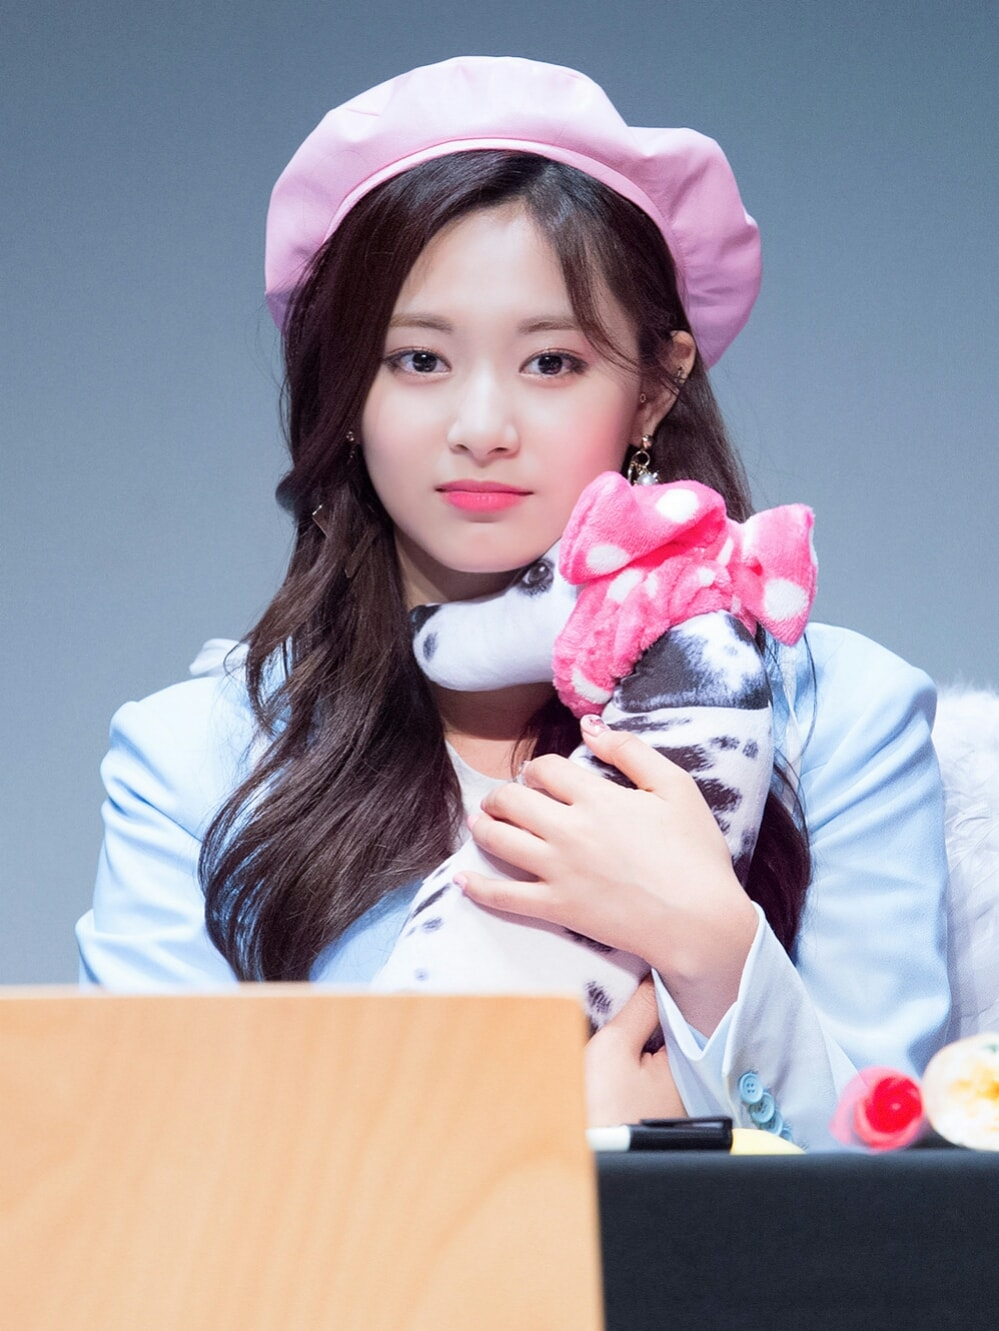 Tzuyu as seen in April 2018